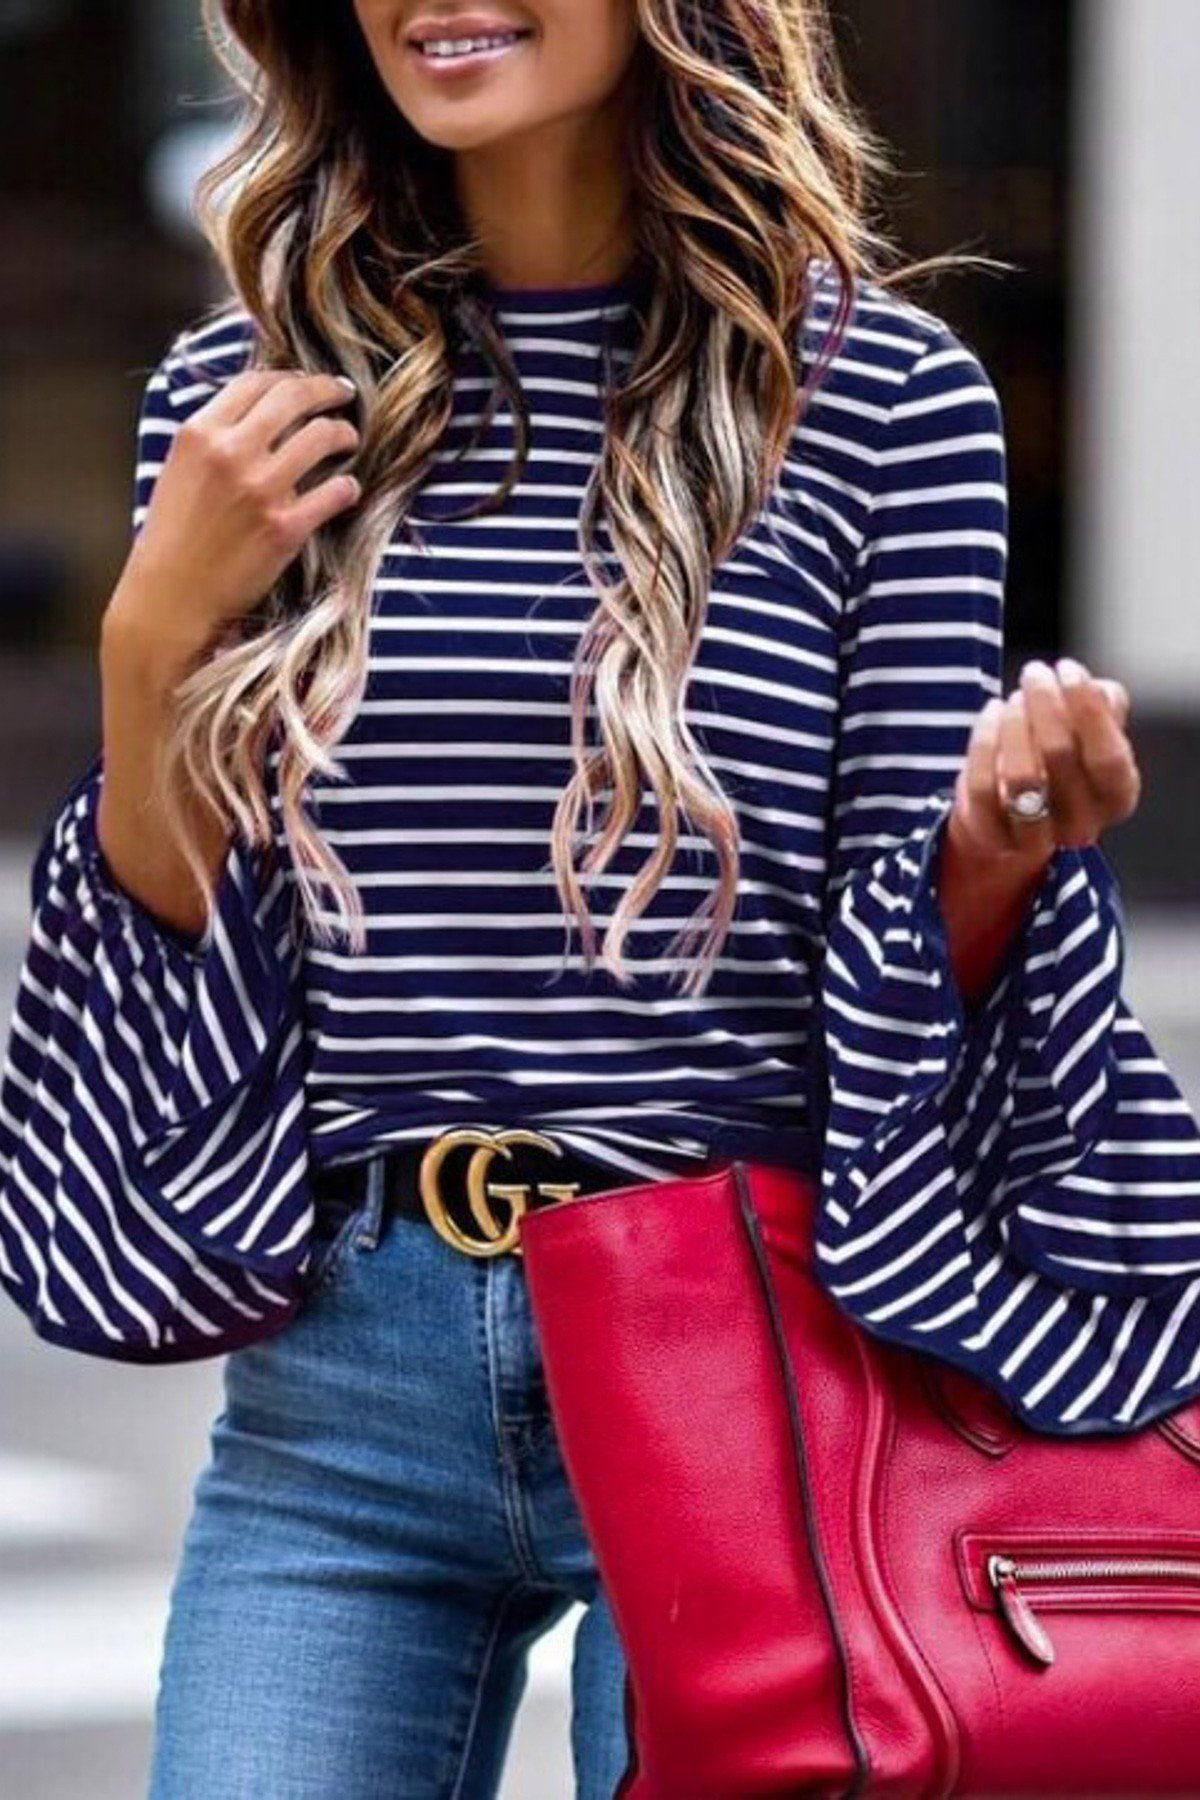 cb4db8999b5e Navy/White Statement Stripe Top Bell Sleeve Blouse, Shirt Sleeves, Bell  Sleeve Top